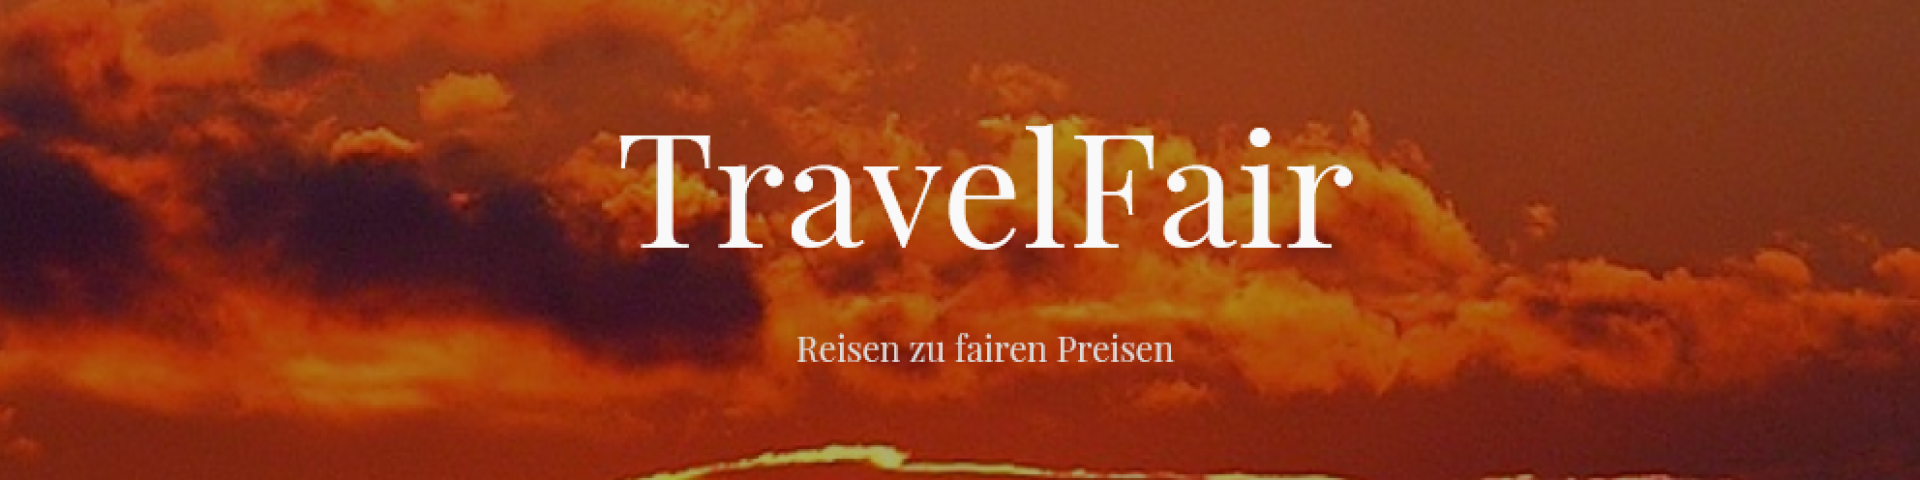 TravelFair